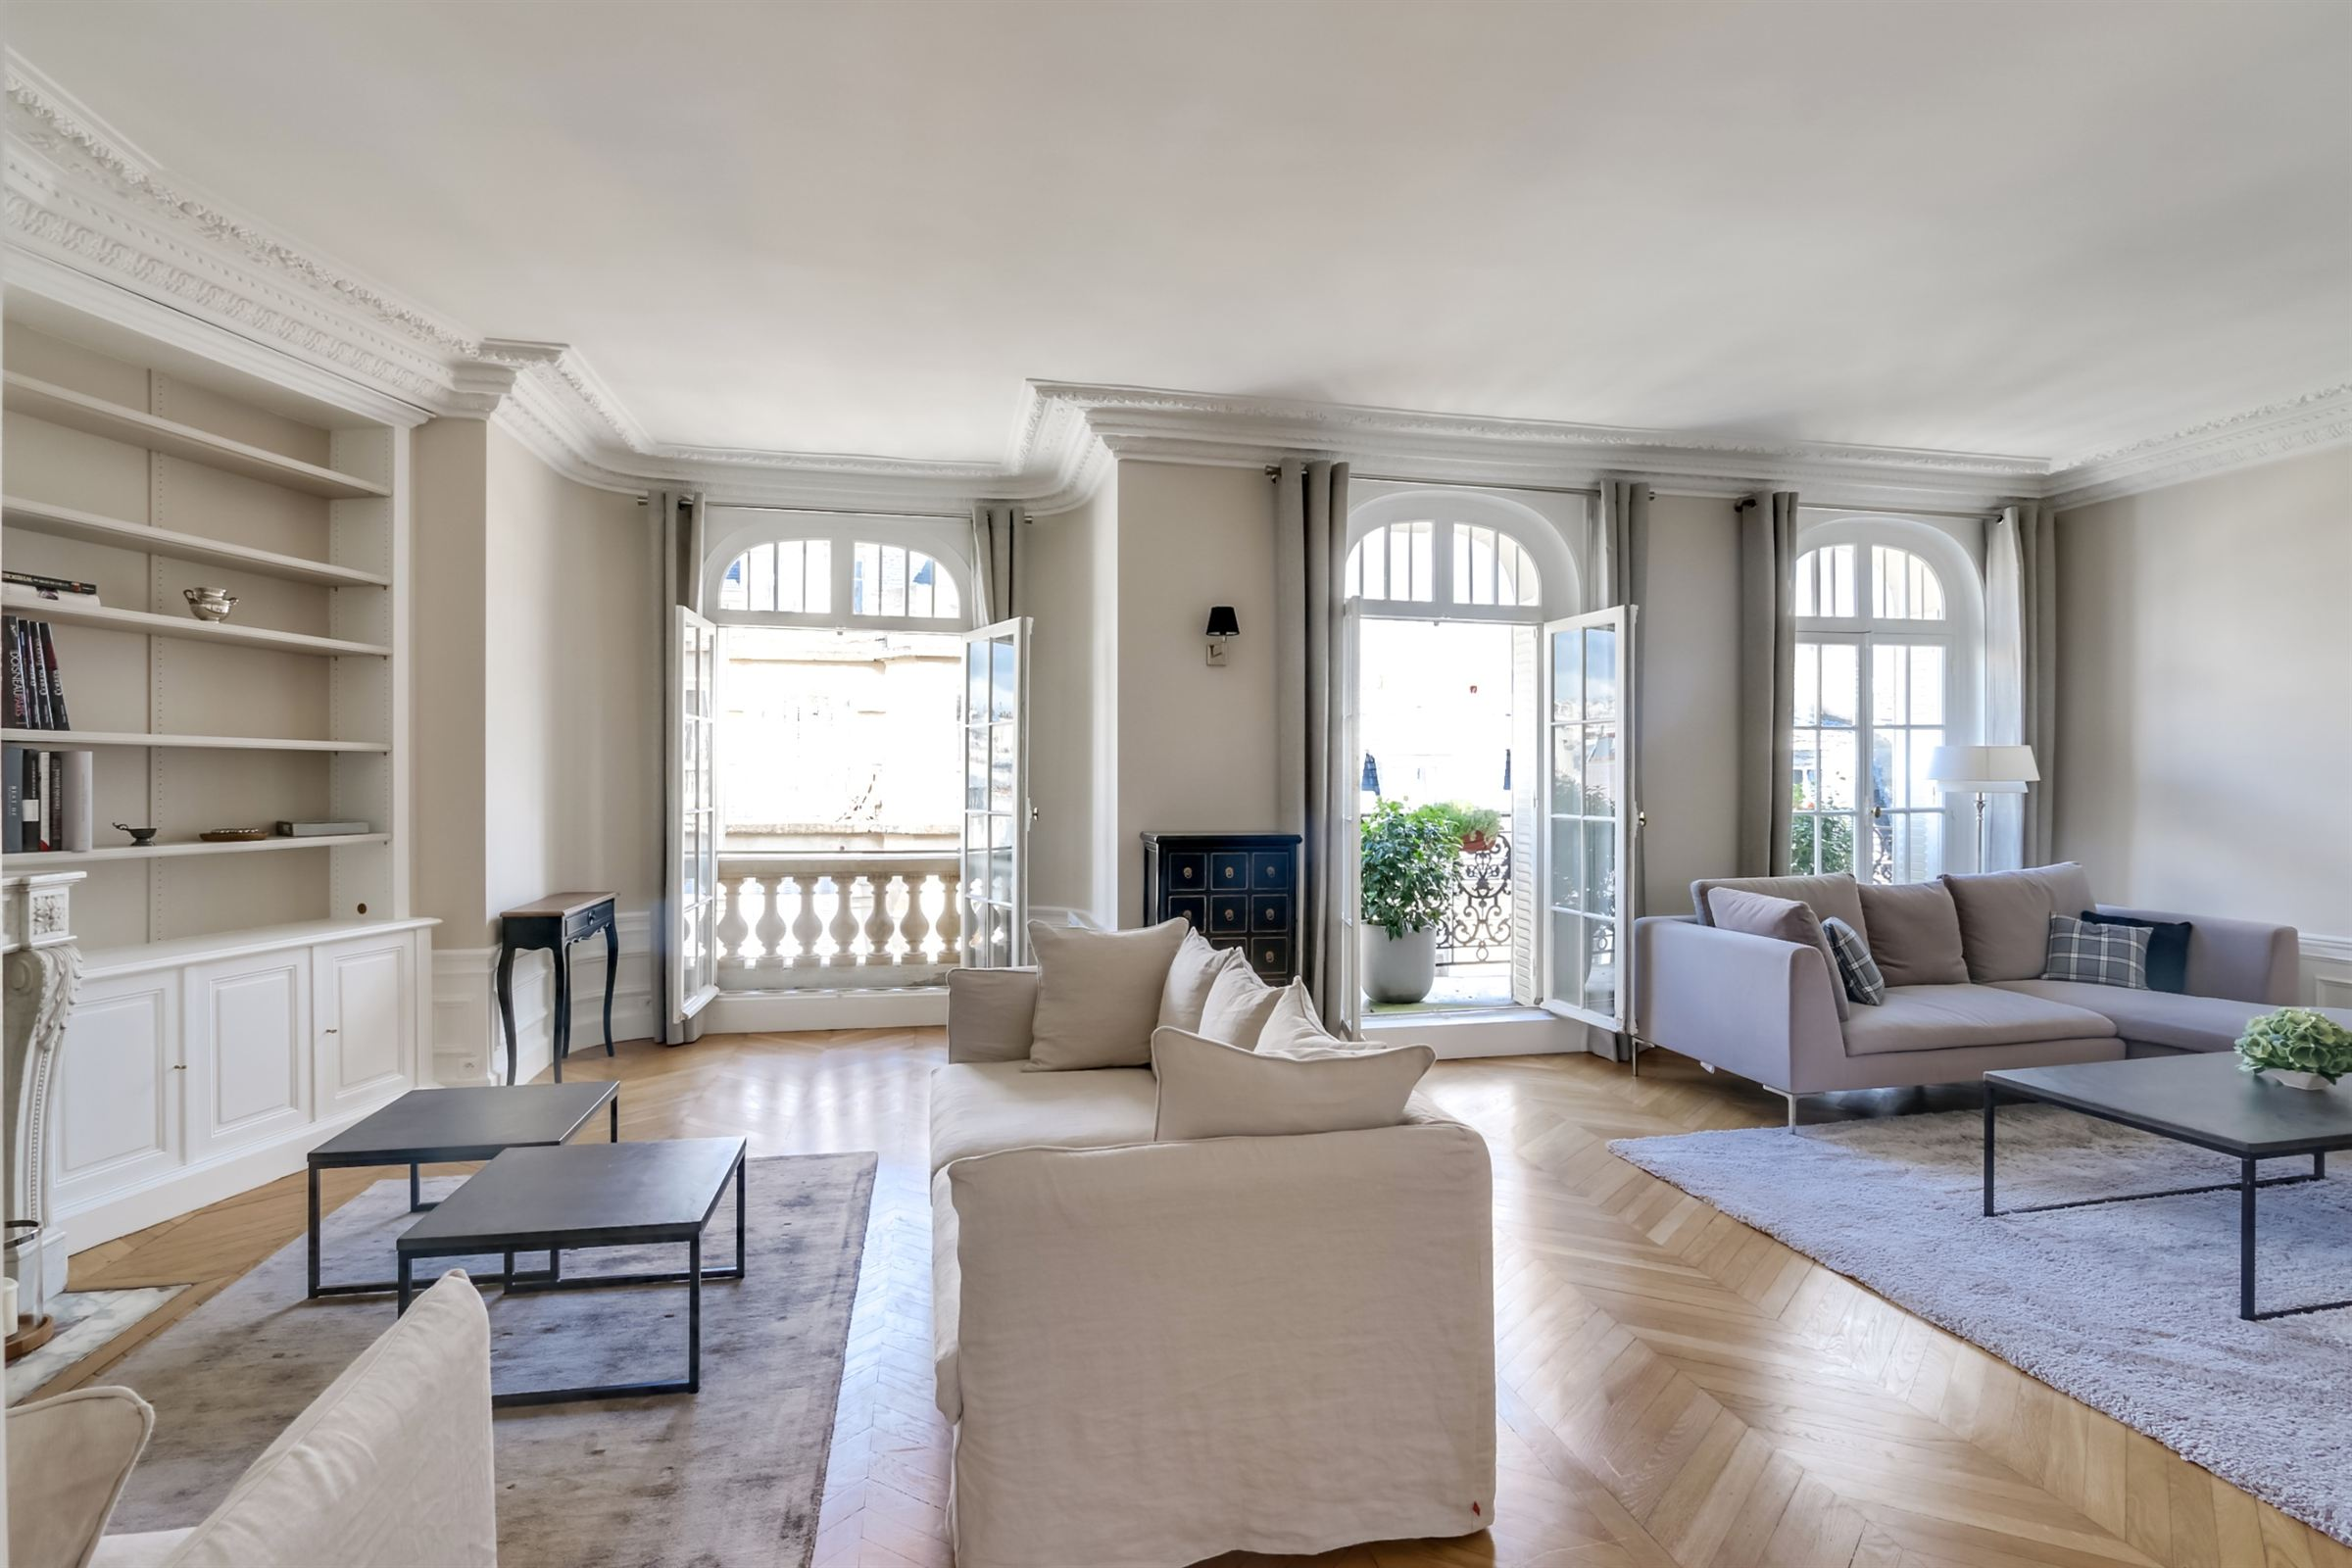 sales property at Apartment for sale - Sole Agent - in Paris 16th - Iéna - Kléber